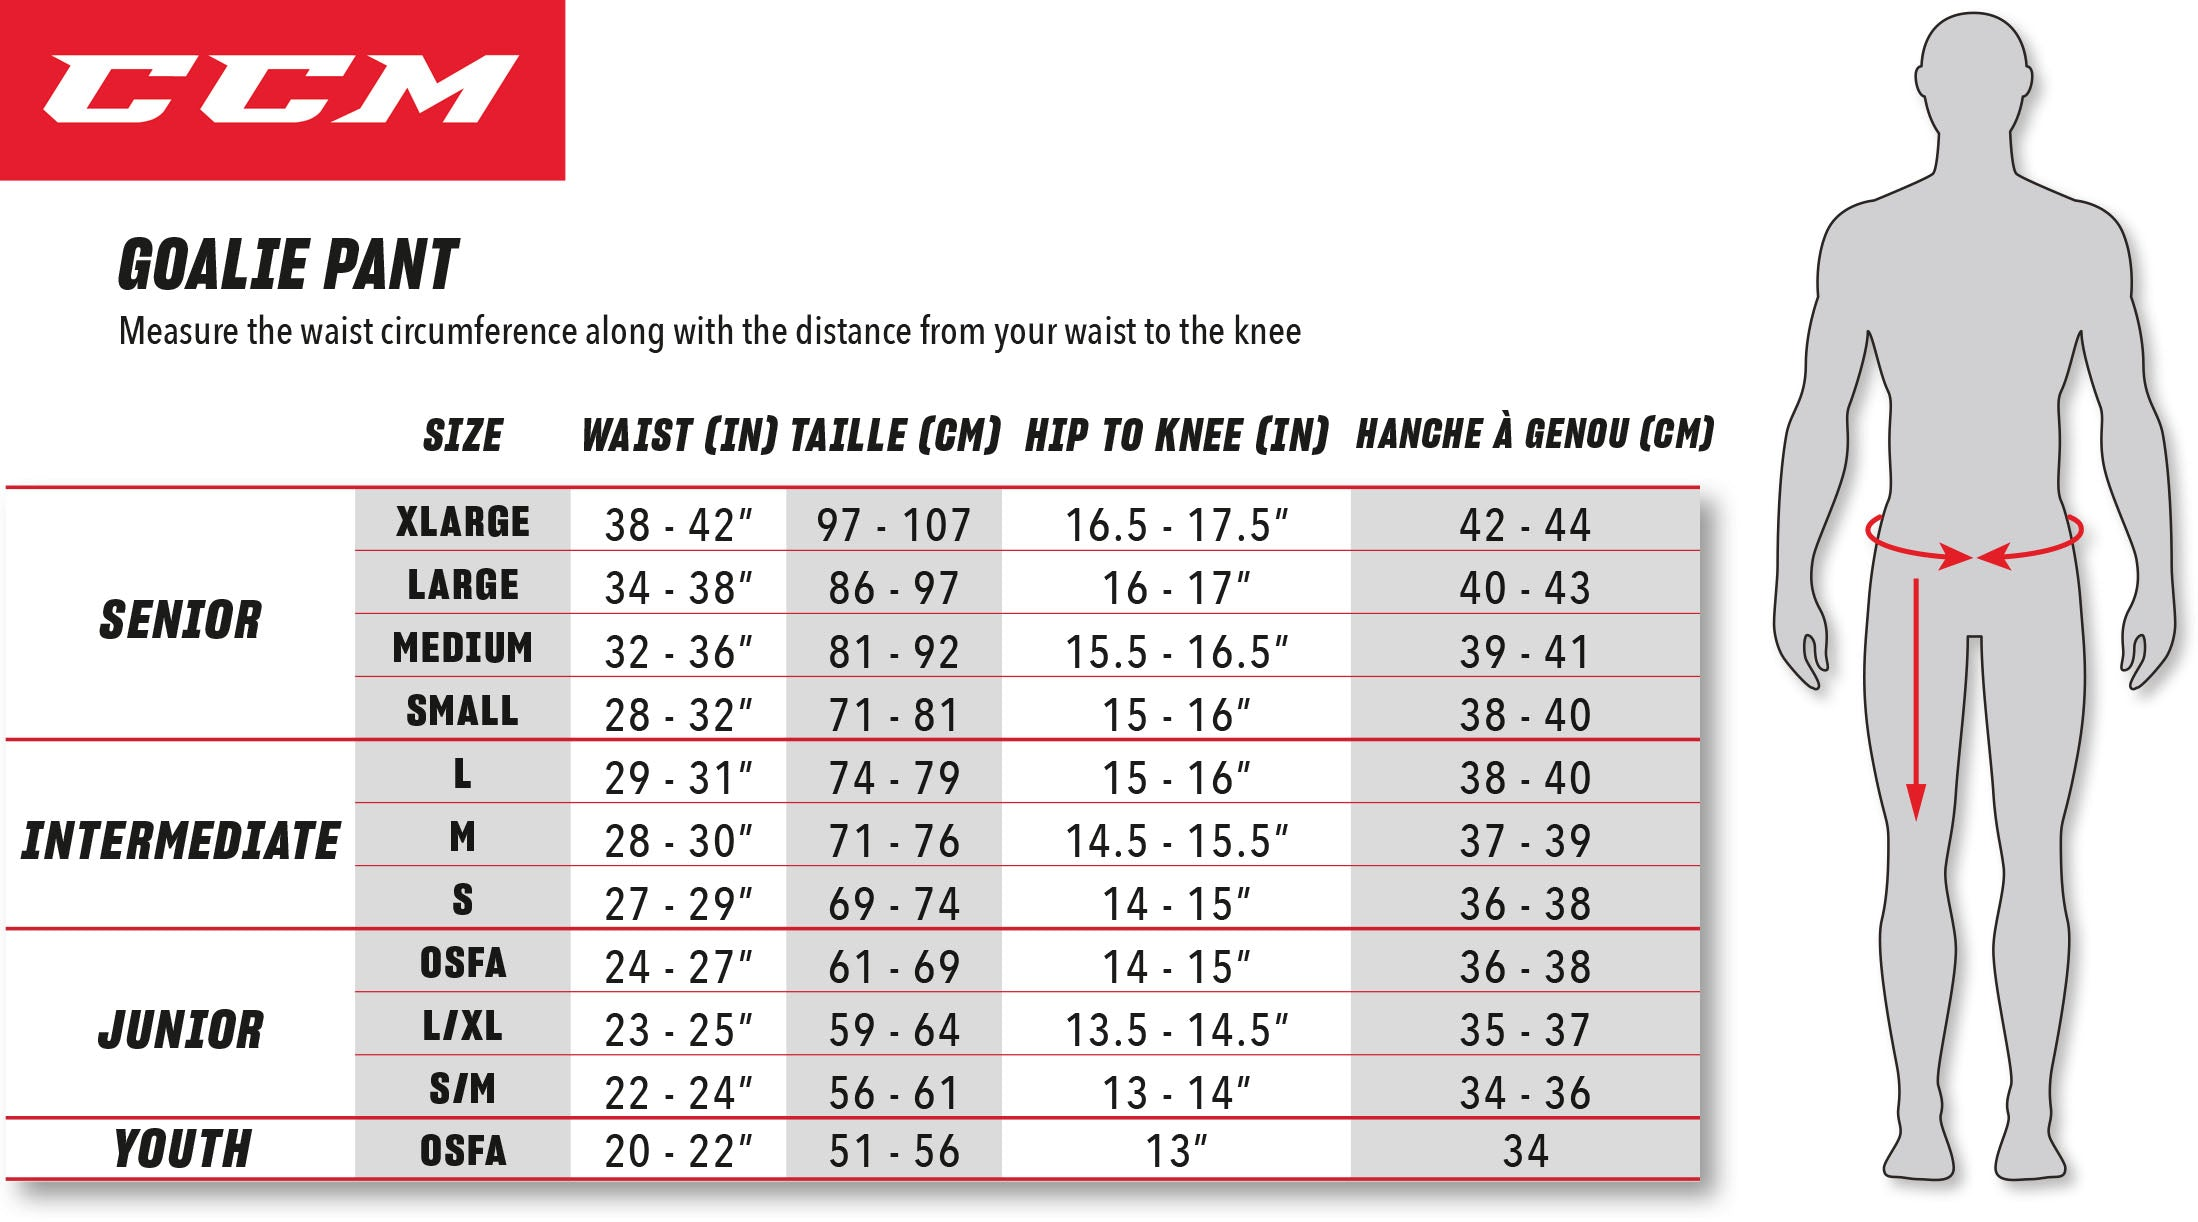 CCM Goalie Pants Sizing Chart